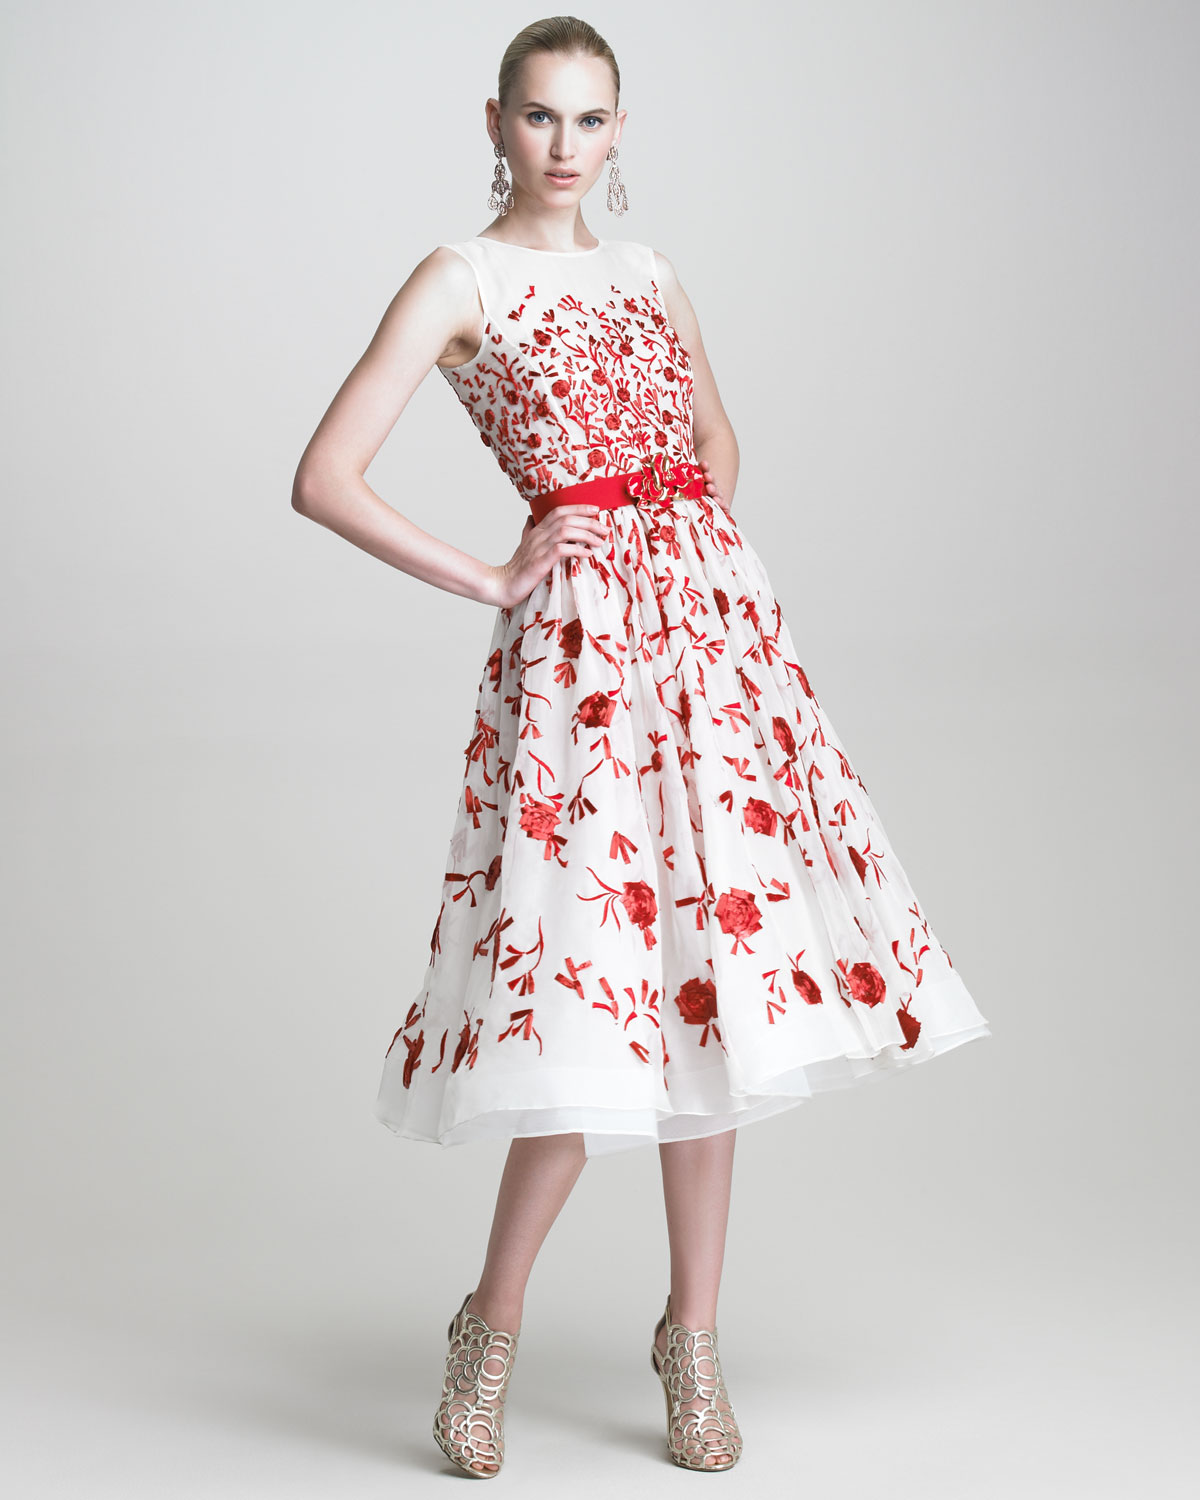 Red dress white flowers fashion white dress red dress white flowers mightylinksfo